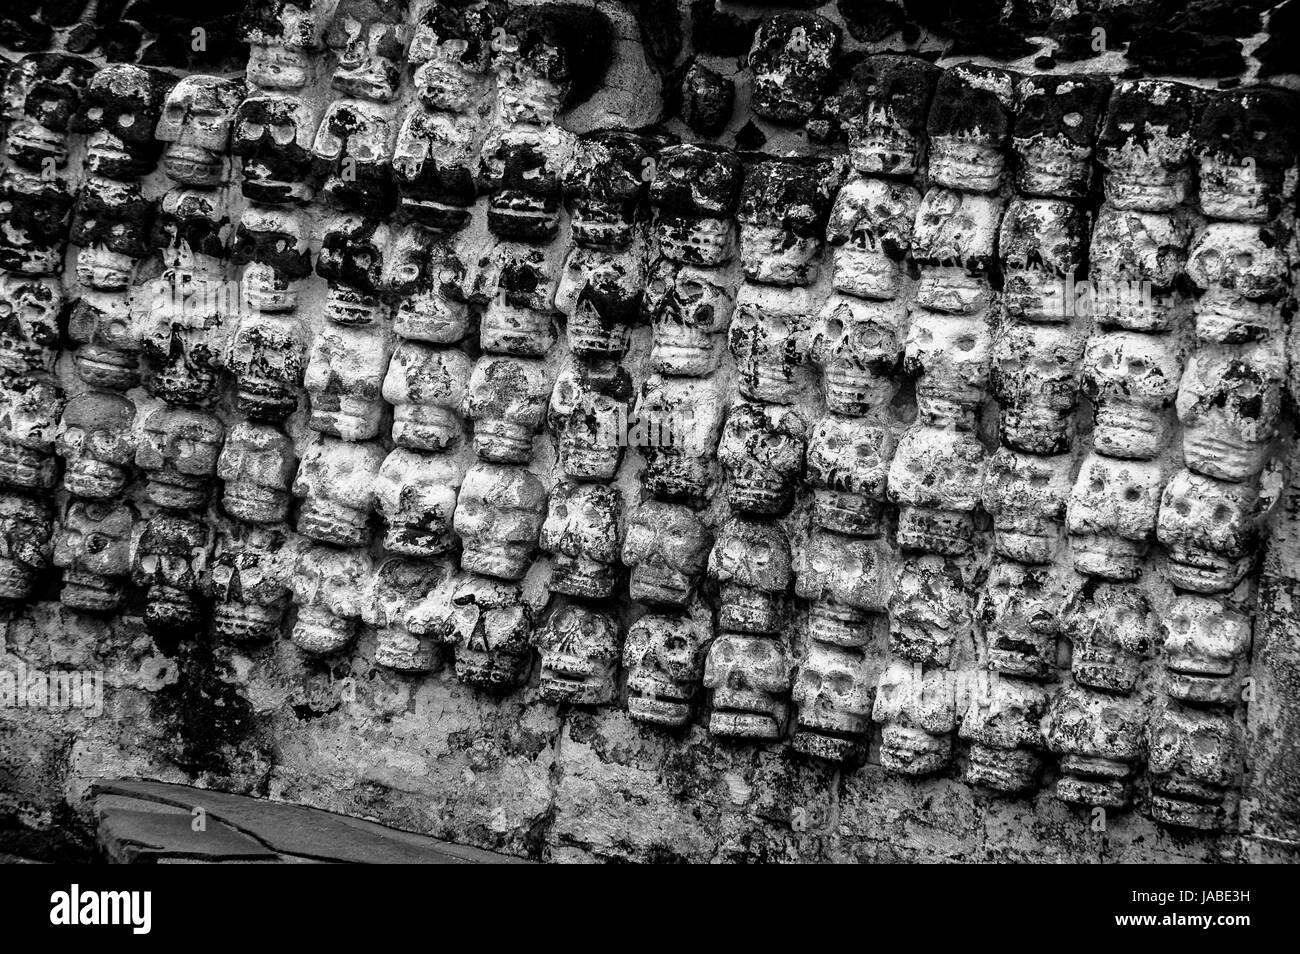 The Aztec ruins of Templo Mayor, a UNESCO World Heritage site, in Mexico City - Stock Image